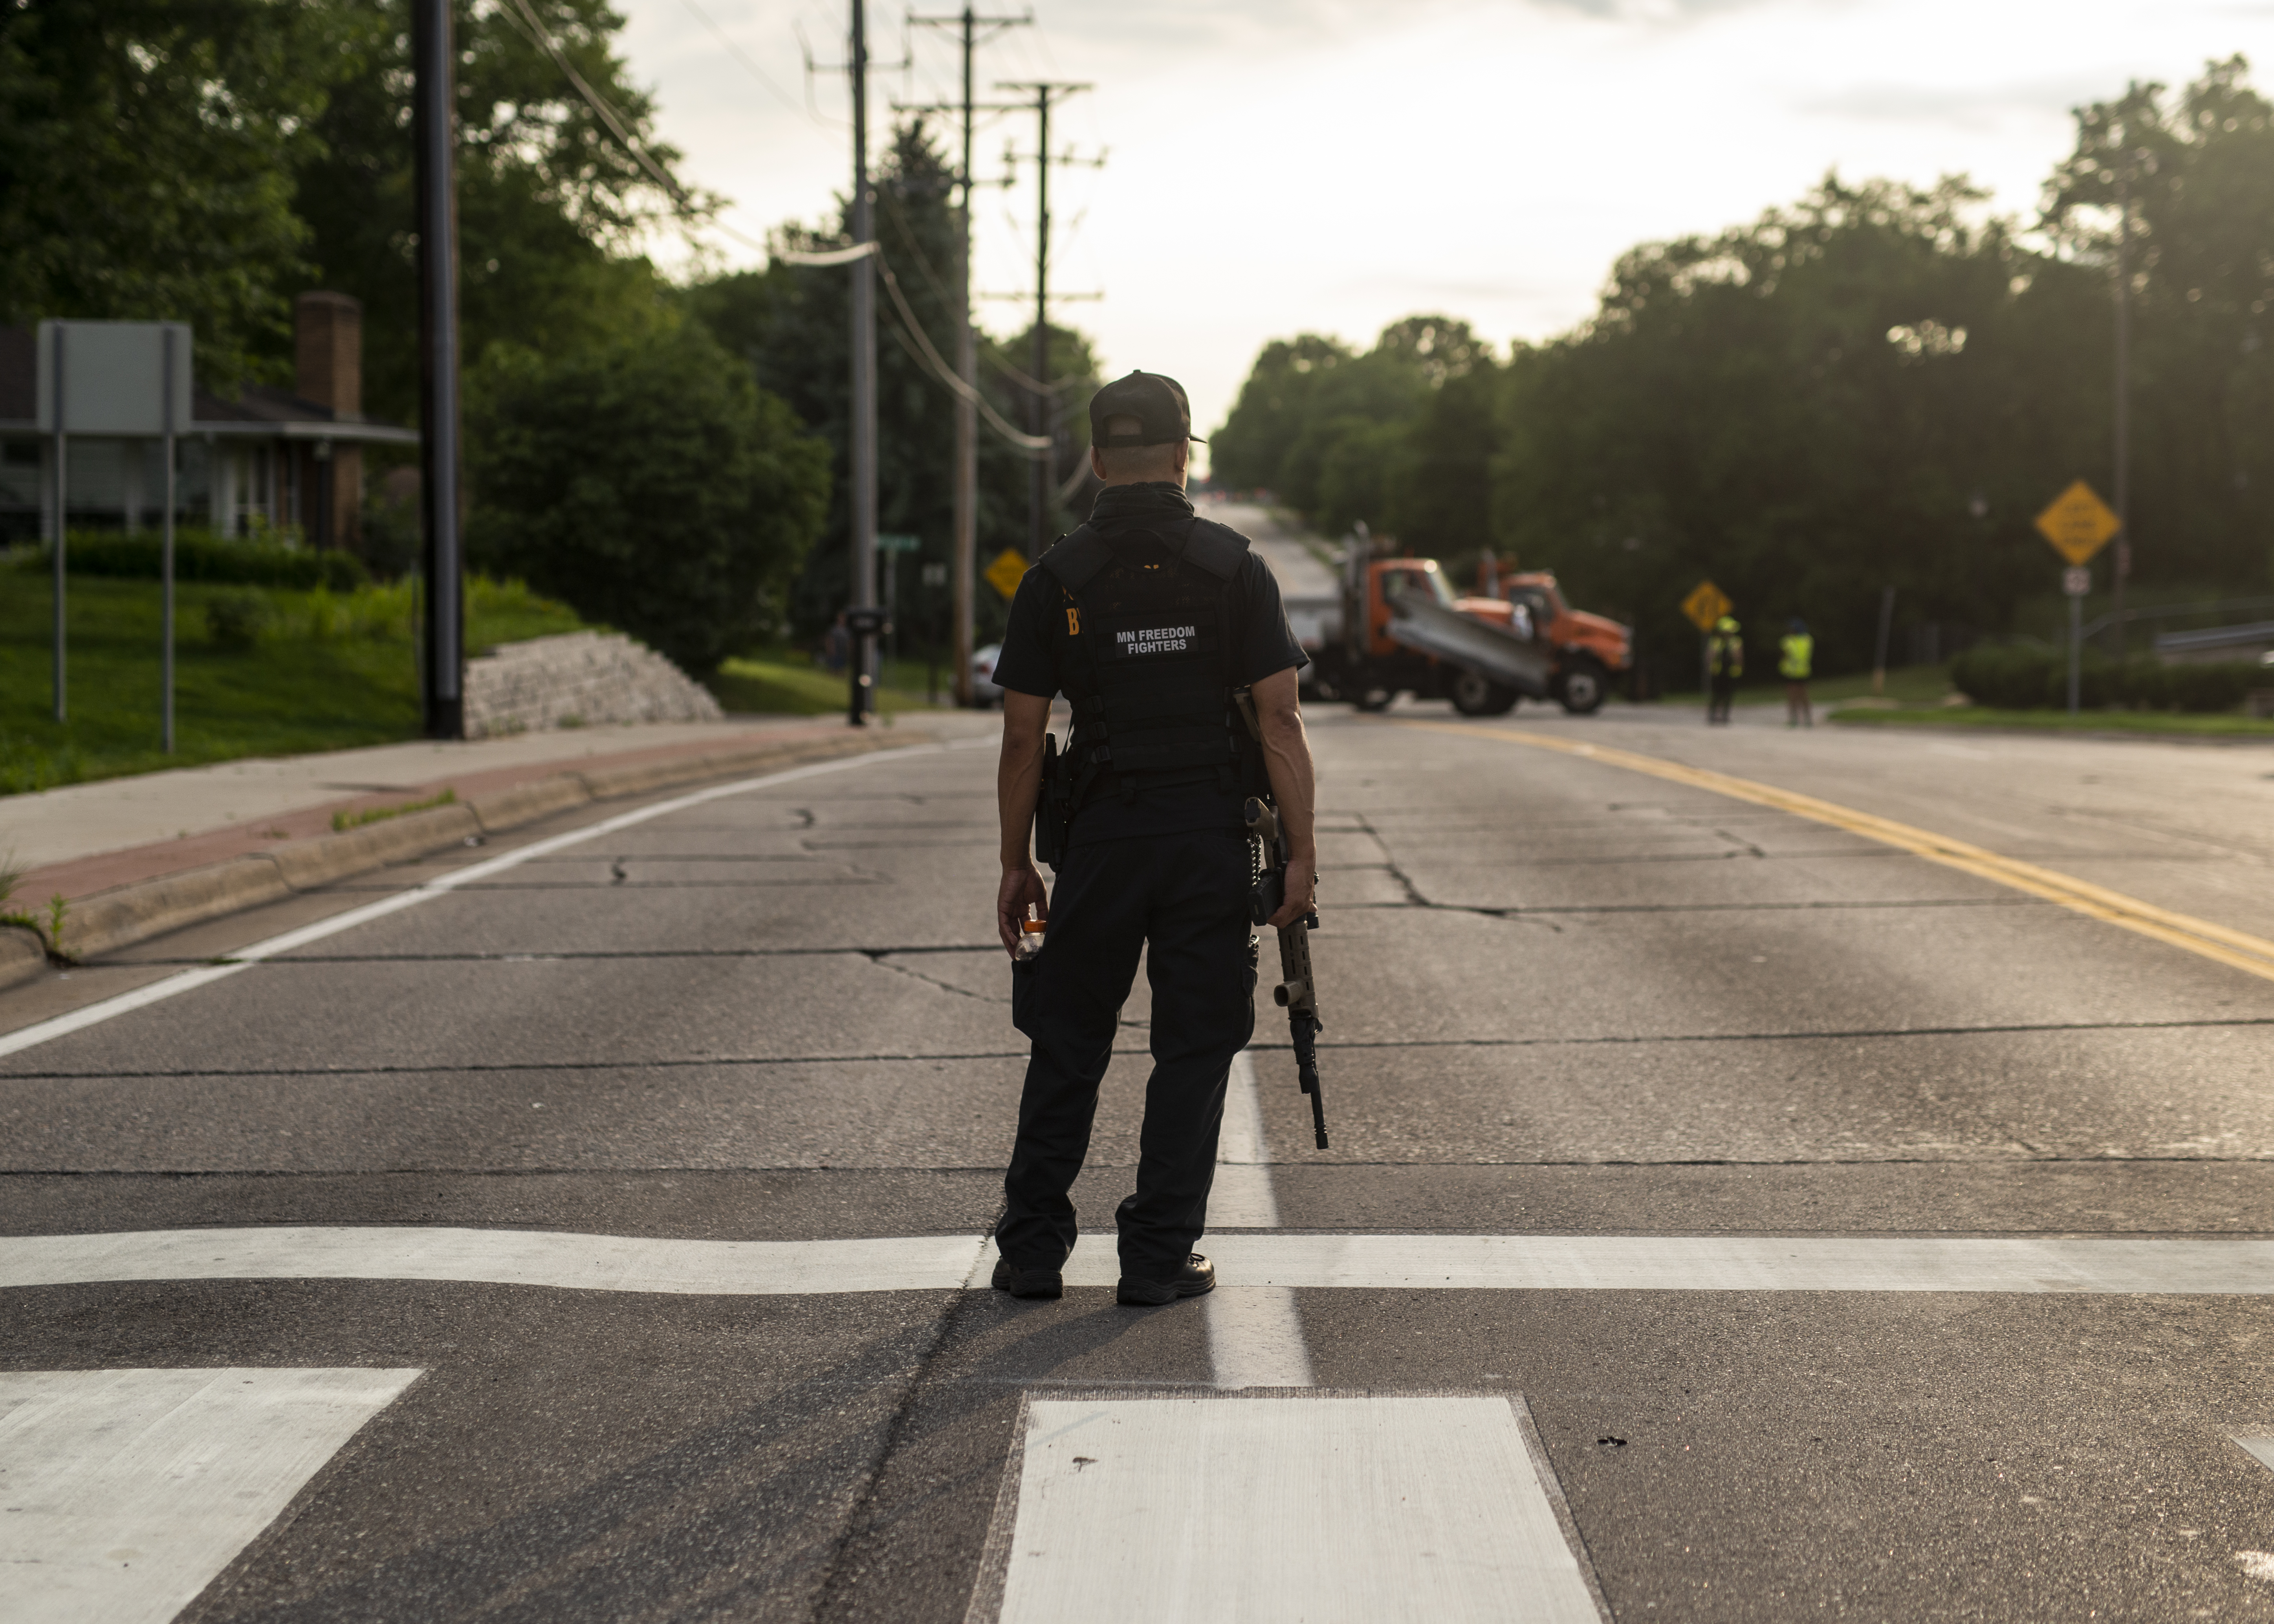 A member of the Minnesota Freedom Fighters stands guard on July 6, 2020. (Photo: Stephen Maturen/Getty Images)